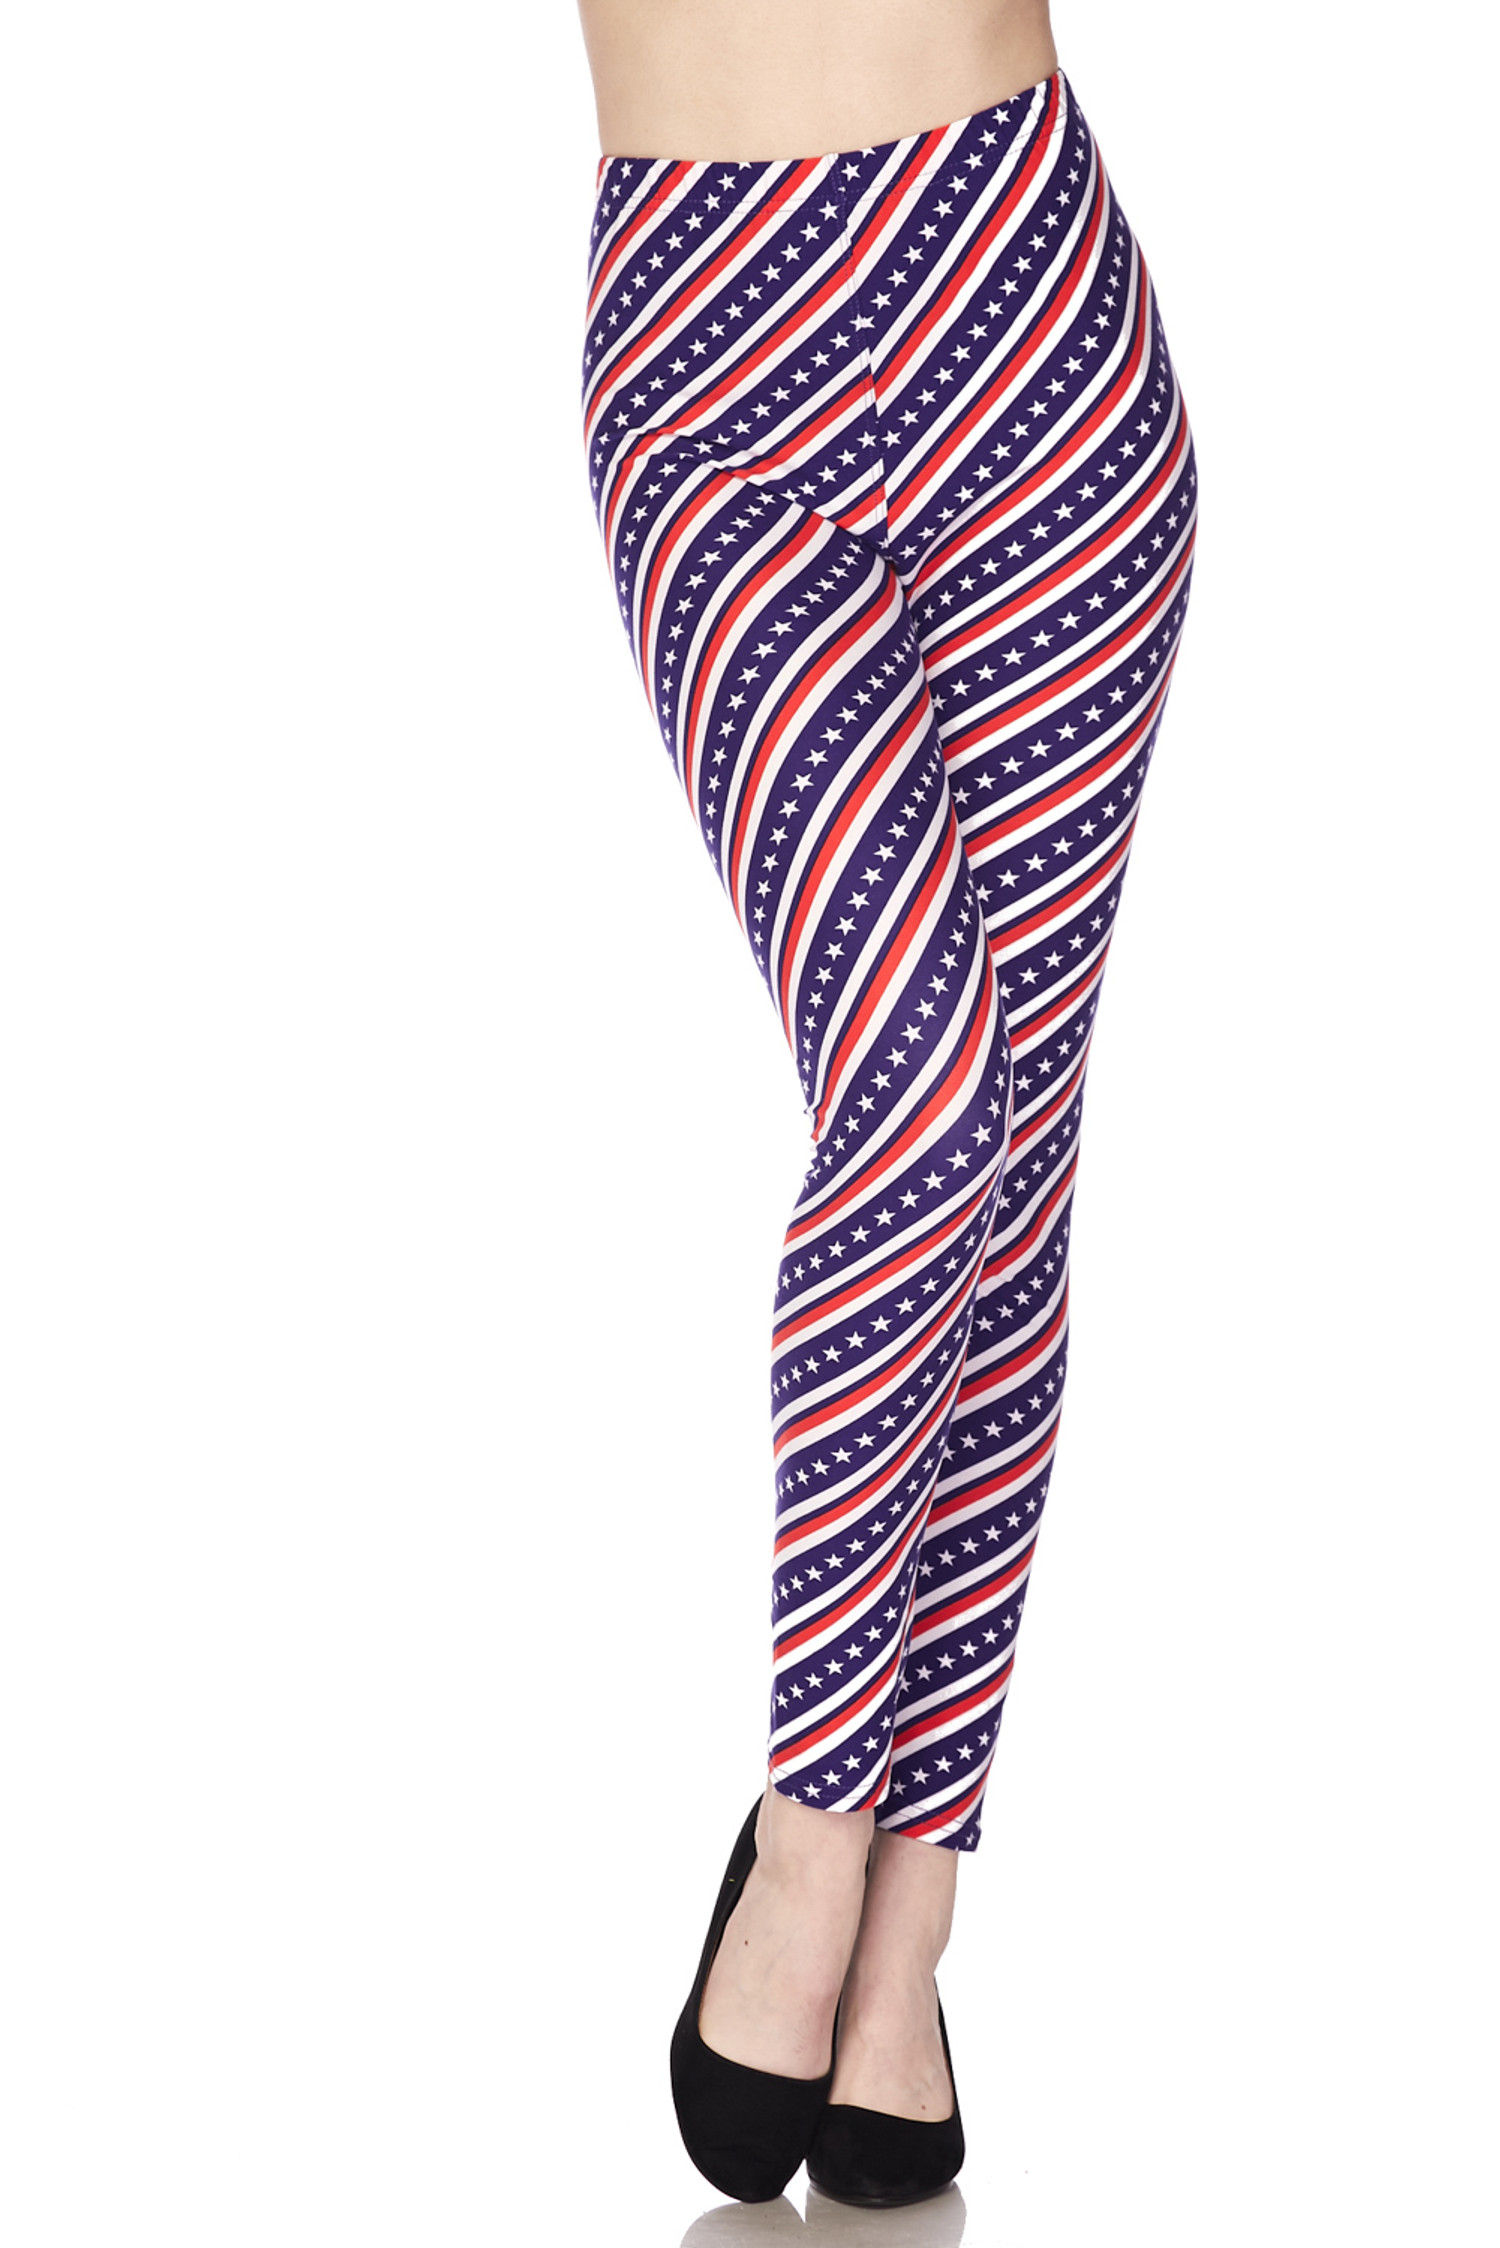 Buttery Soft Spiral Stars and Stripes Extra Plus Size Leggings - 3X-5X